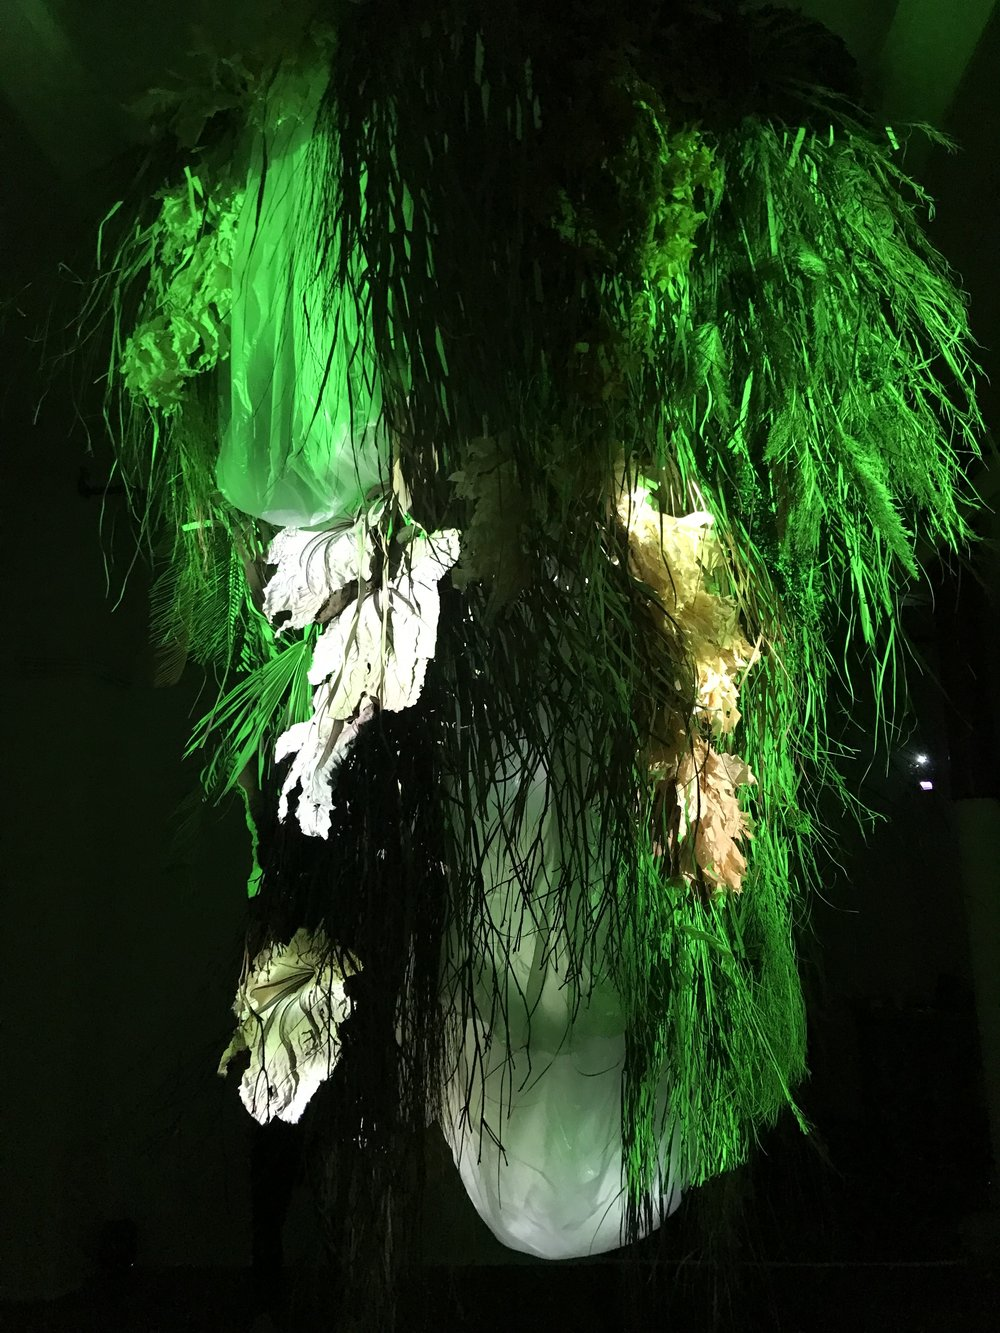 During their 2-month residency, designer Laura Väinölä and film maker-composer Ezra Gould made a site-specific installation dealing with the complex relationship of nature and culture. The installation was on view at Triangle Arts Association in June 2018.